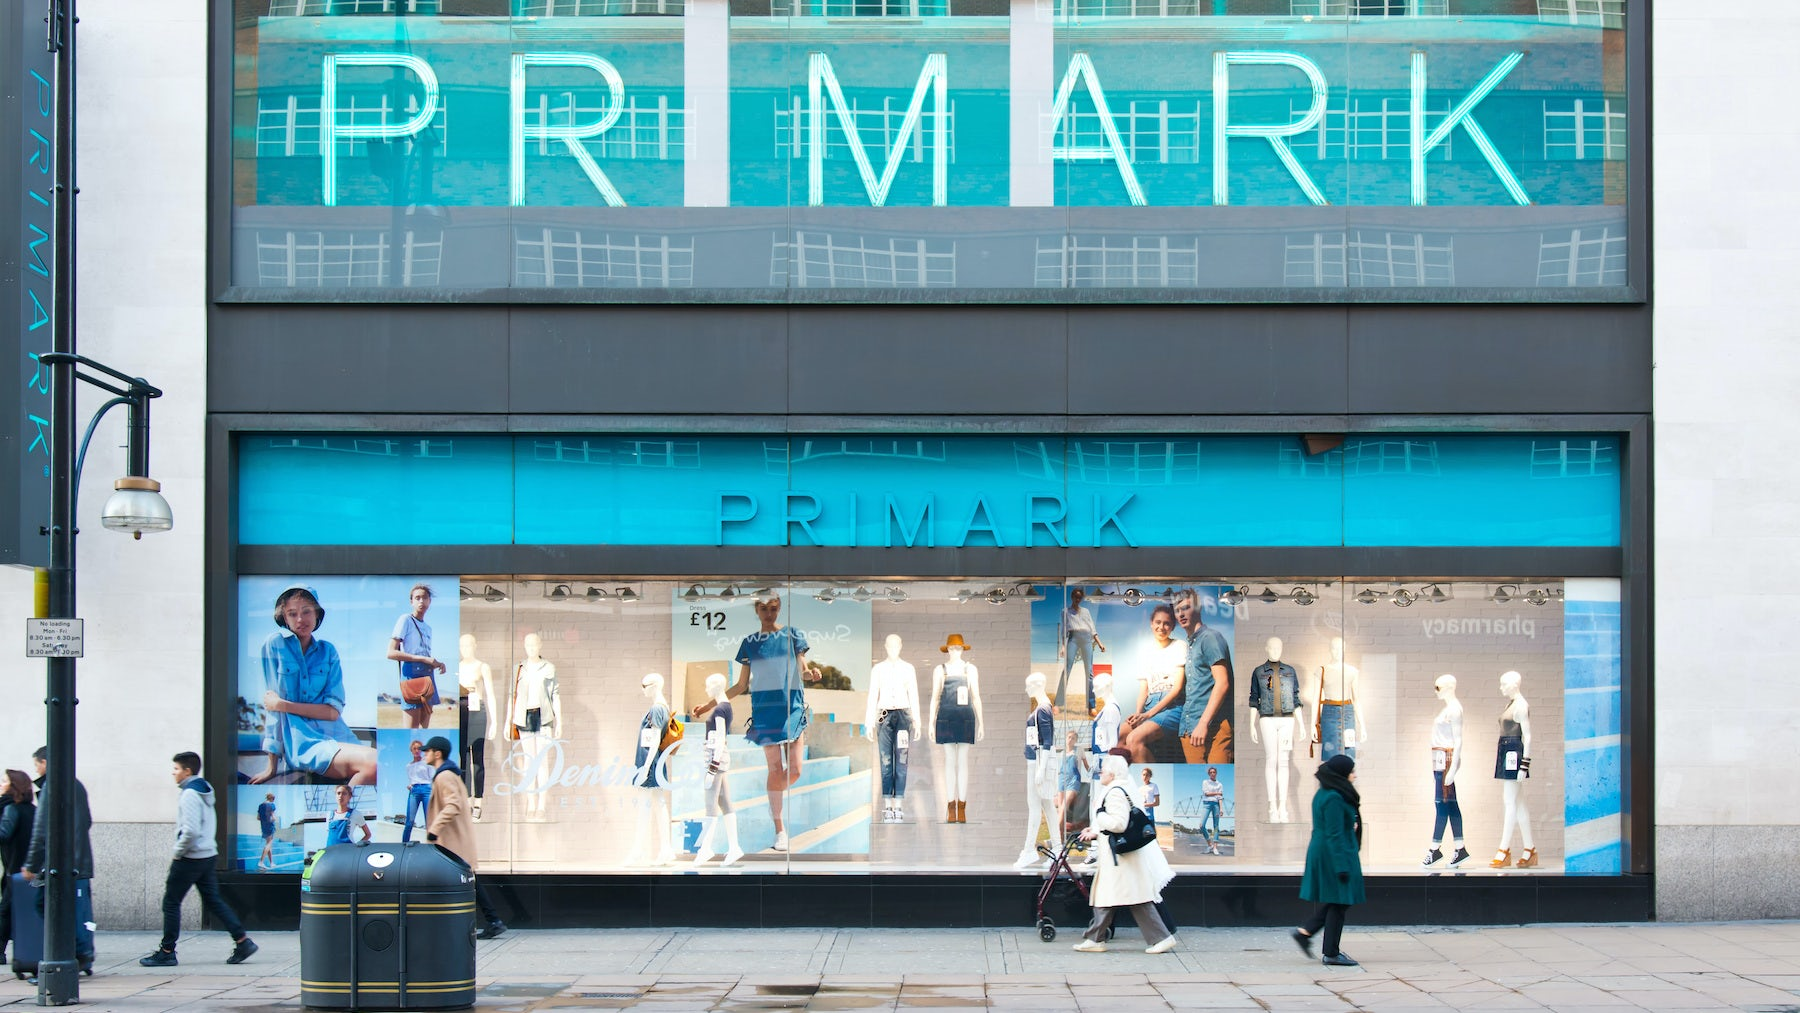 Primark Owner AB Foods Holds Guidance After Revenue Rise